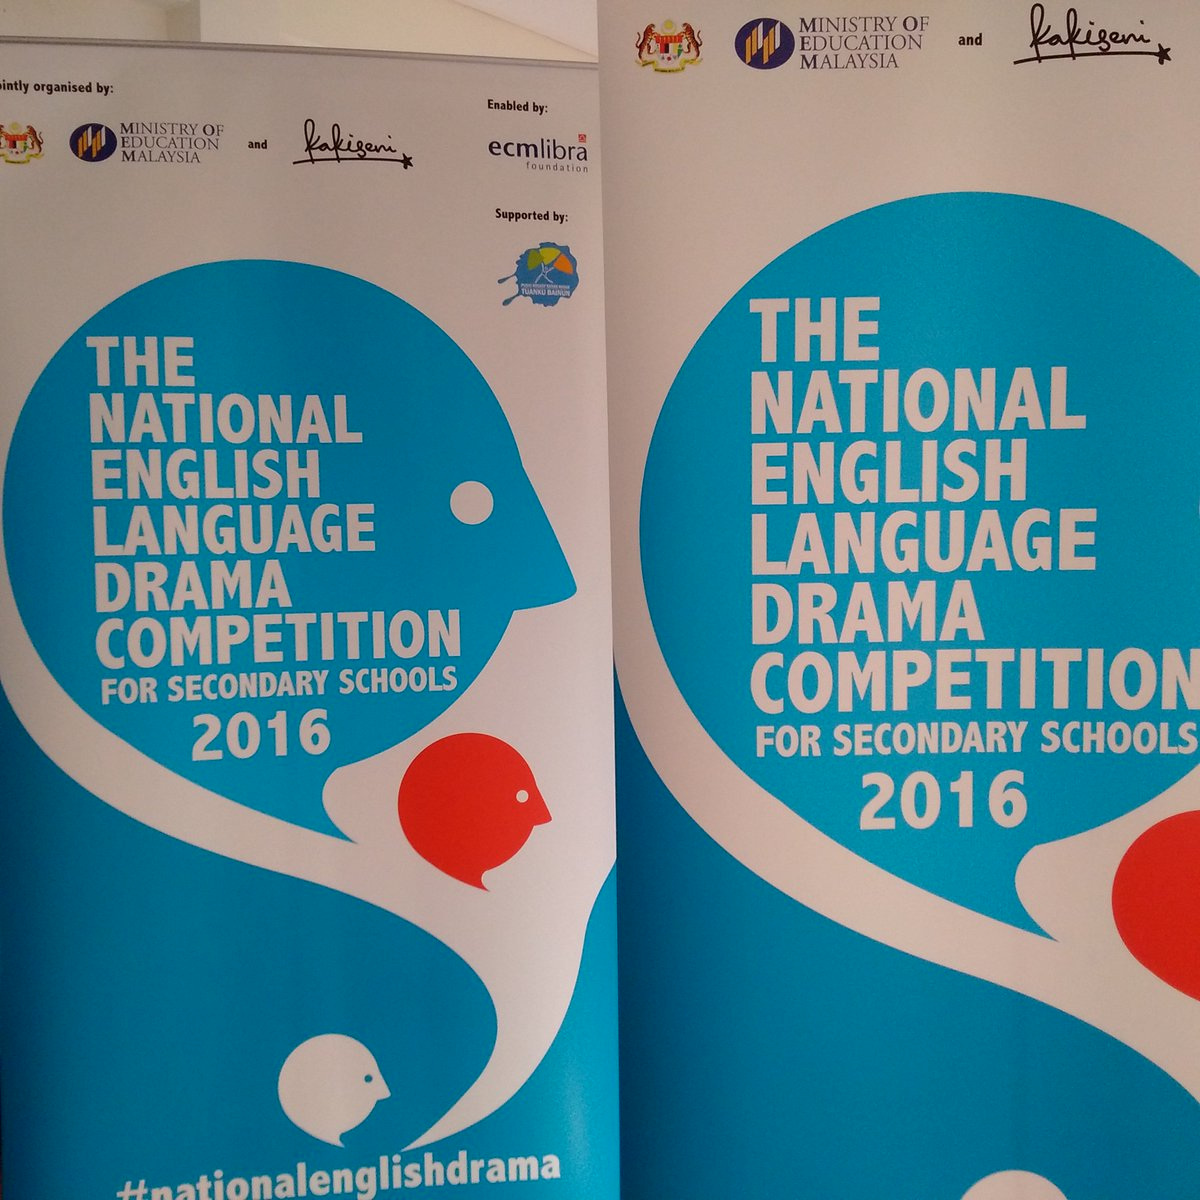 An exciting journey starts today: #NationalEnglishDrama Using theatre to remove barriers and to start conversing! https://t.co/WPwsv7JVnx